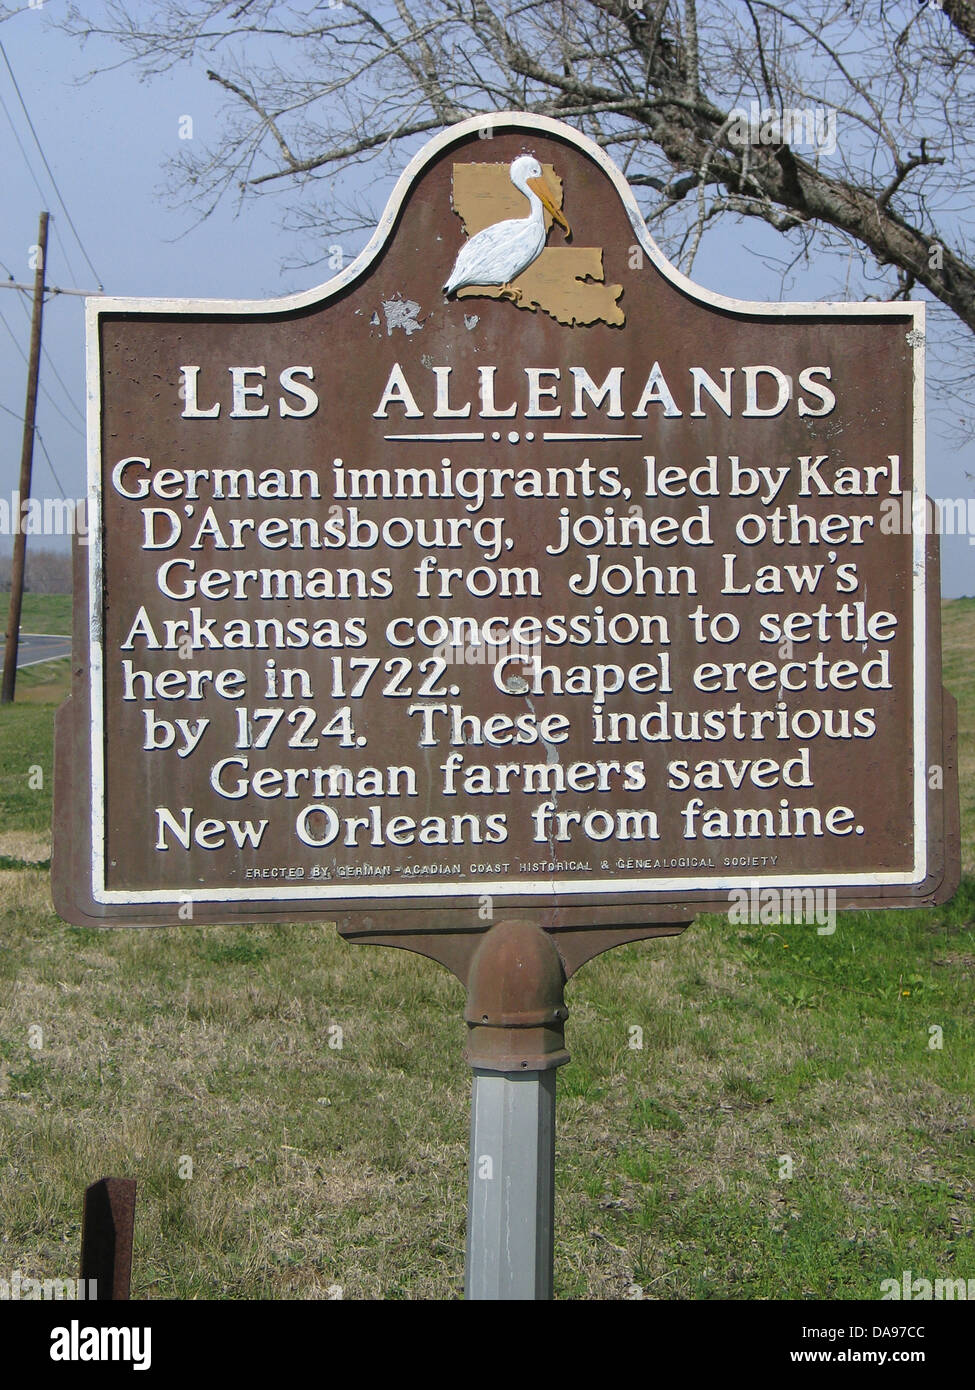 LES ALLEMANDS German immigrants, led by Karl D'Arensbourg, joined other Germans from John Law's Arkansas - Stock Image